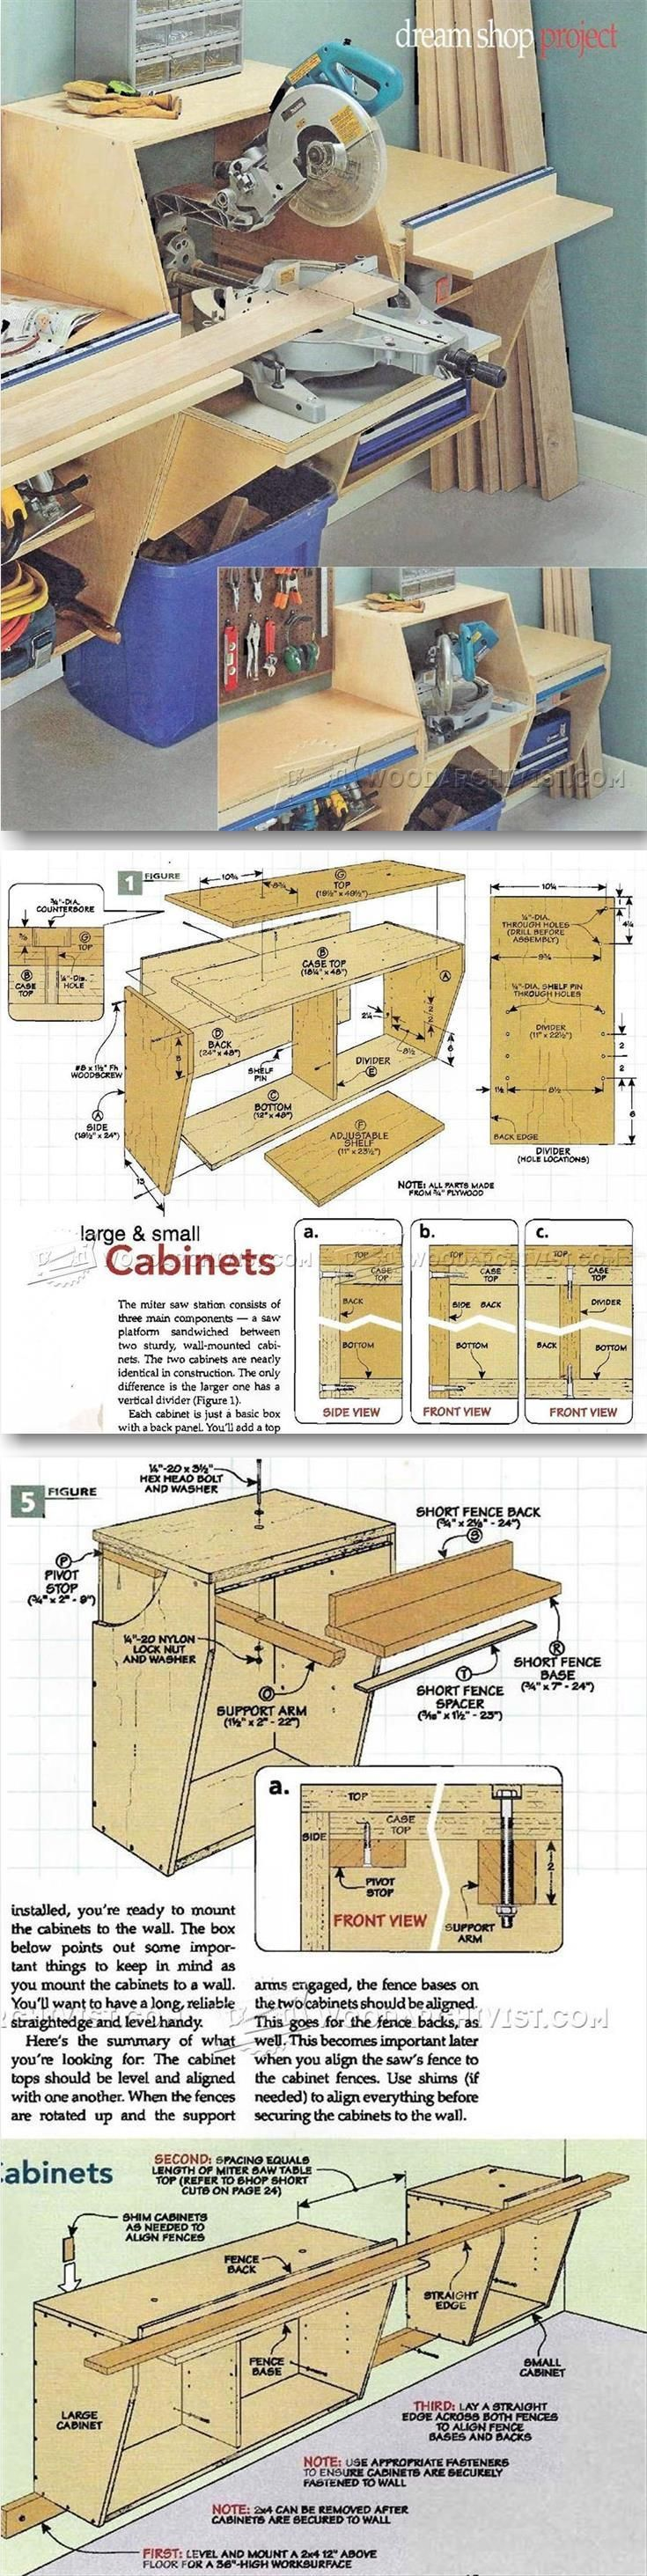 48 Best Puertas Forja Images On Pinterest Work Benches Outlet 4 Prong For Wiring A Stove Http Www Hammerzone Com Miter Saw Station Plans Tips Jigs And Fixtures Woodarchivist